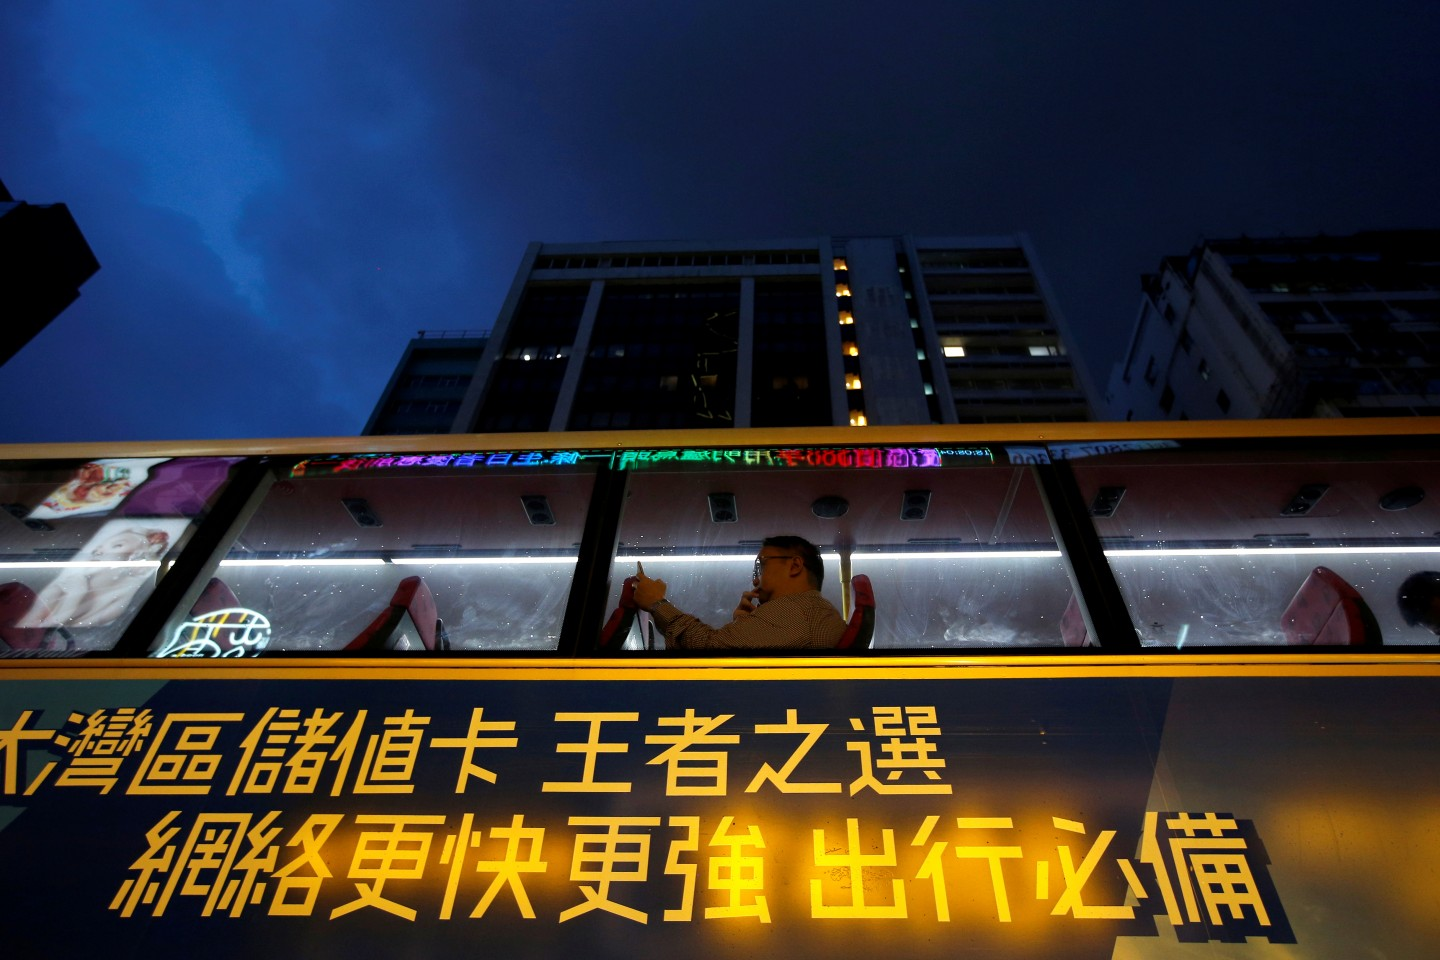 A man uses a phone as he travels on a bus with an advertisement for Greater Bay area SIM cards, in Hong Kong, China, August 19, 2019. REUTERS/Willy Kurniawan/File Photo